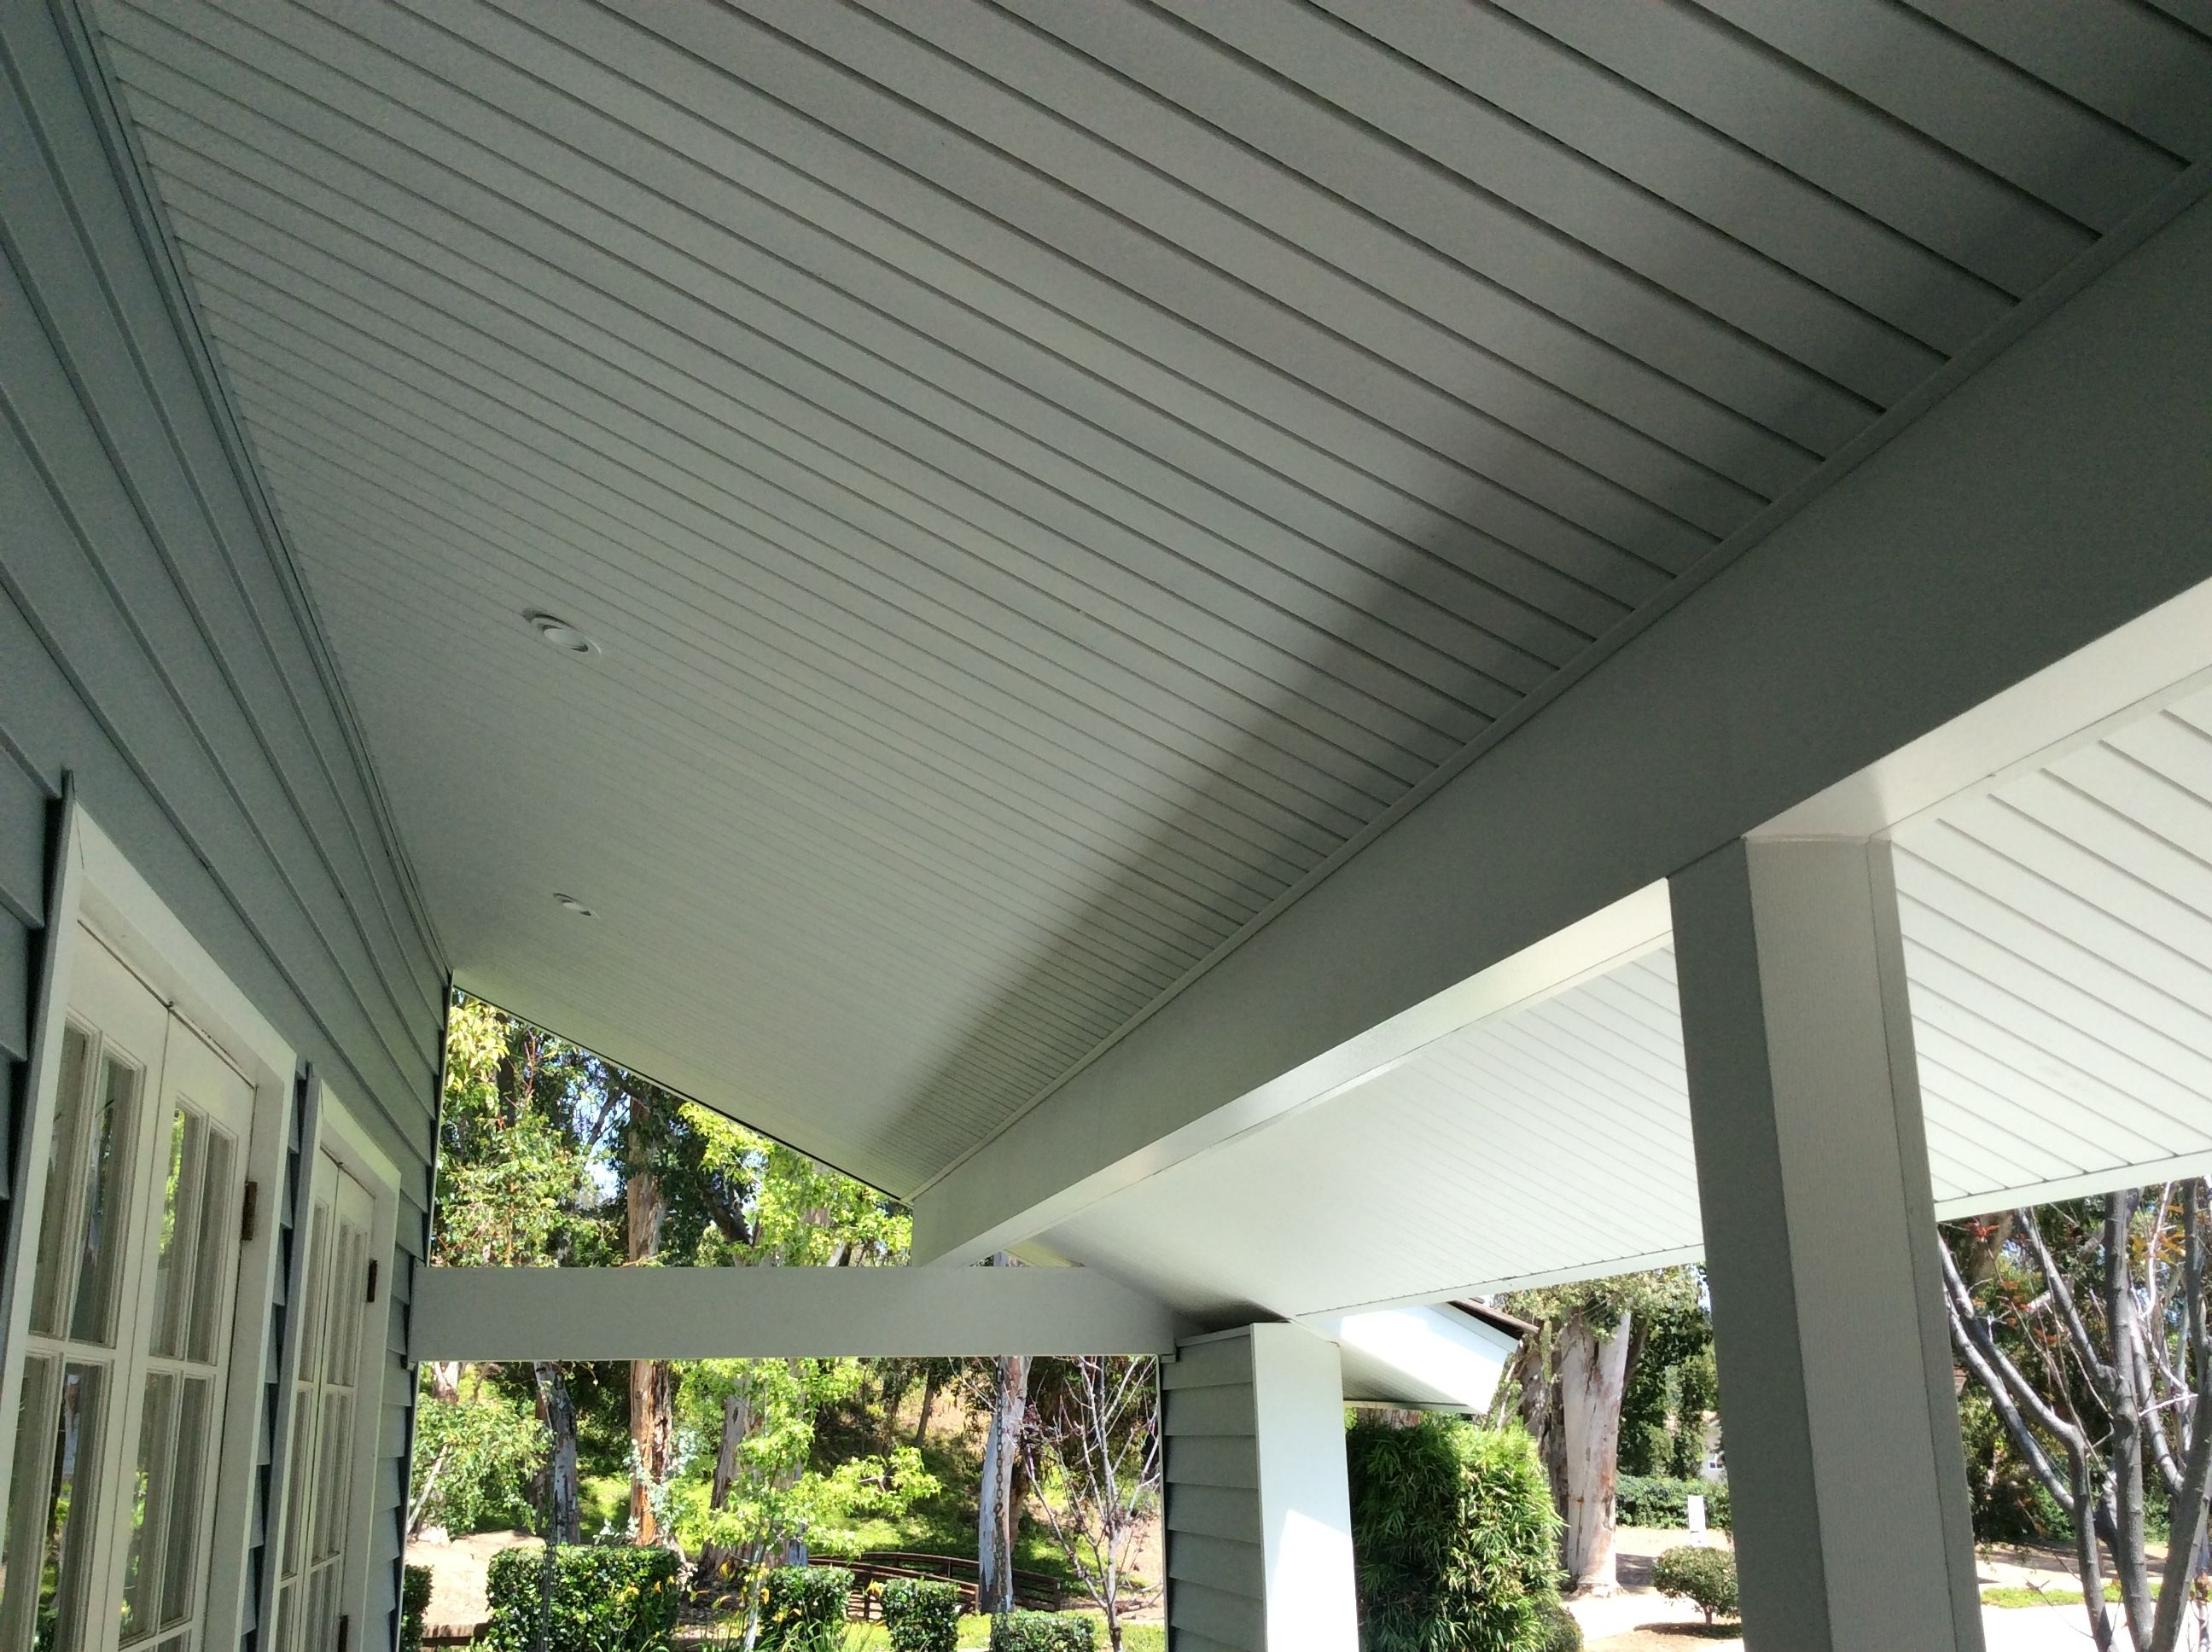 High Quality Vinyl Patio Cover Materials